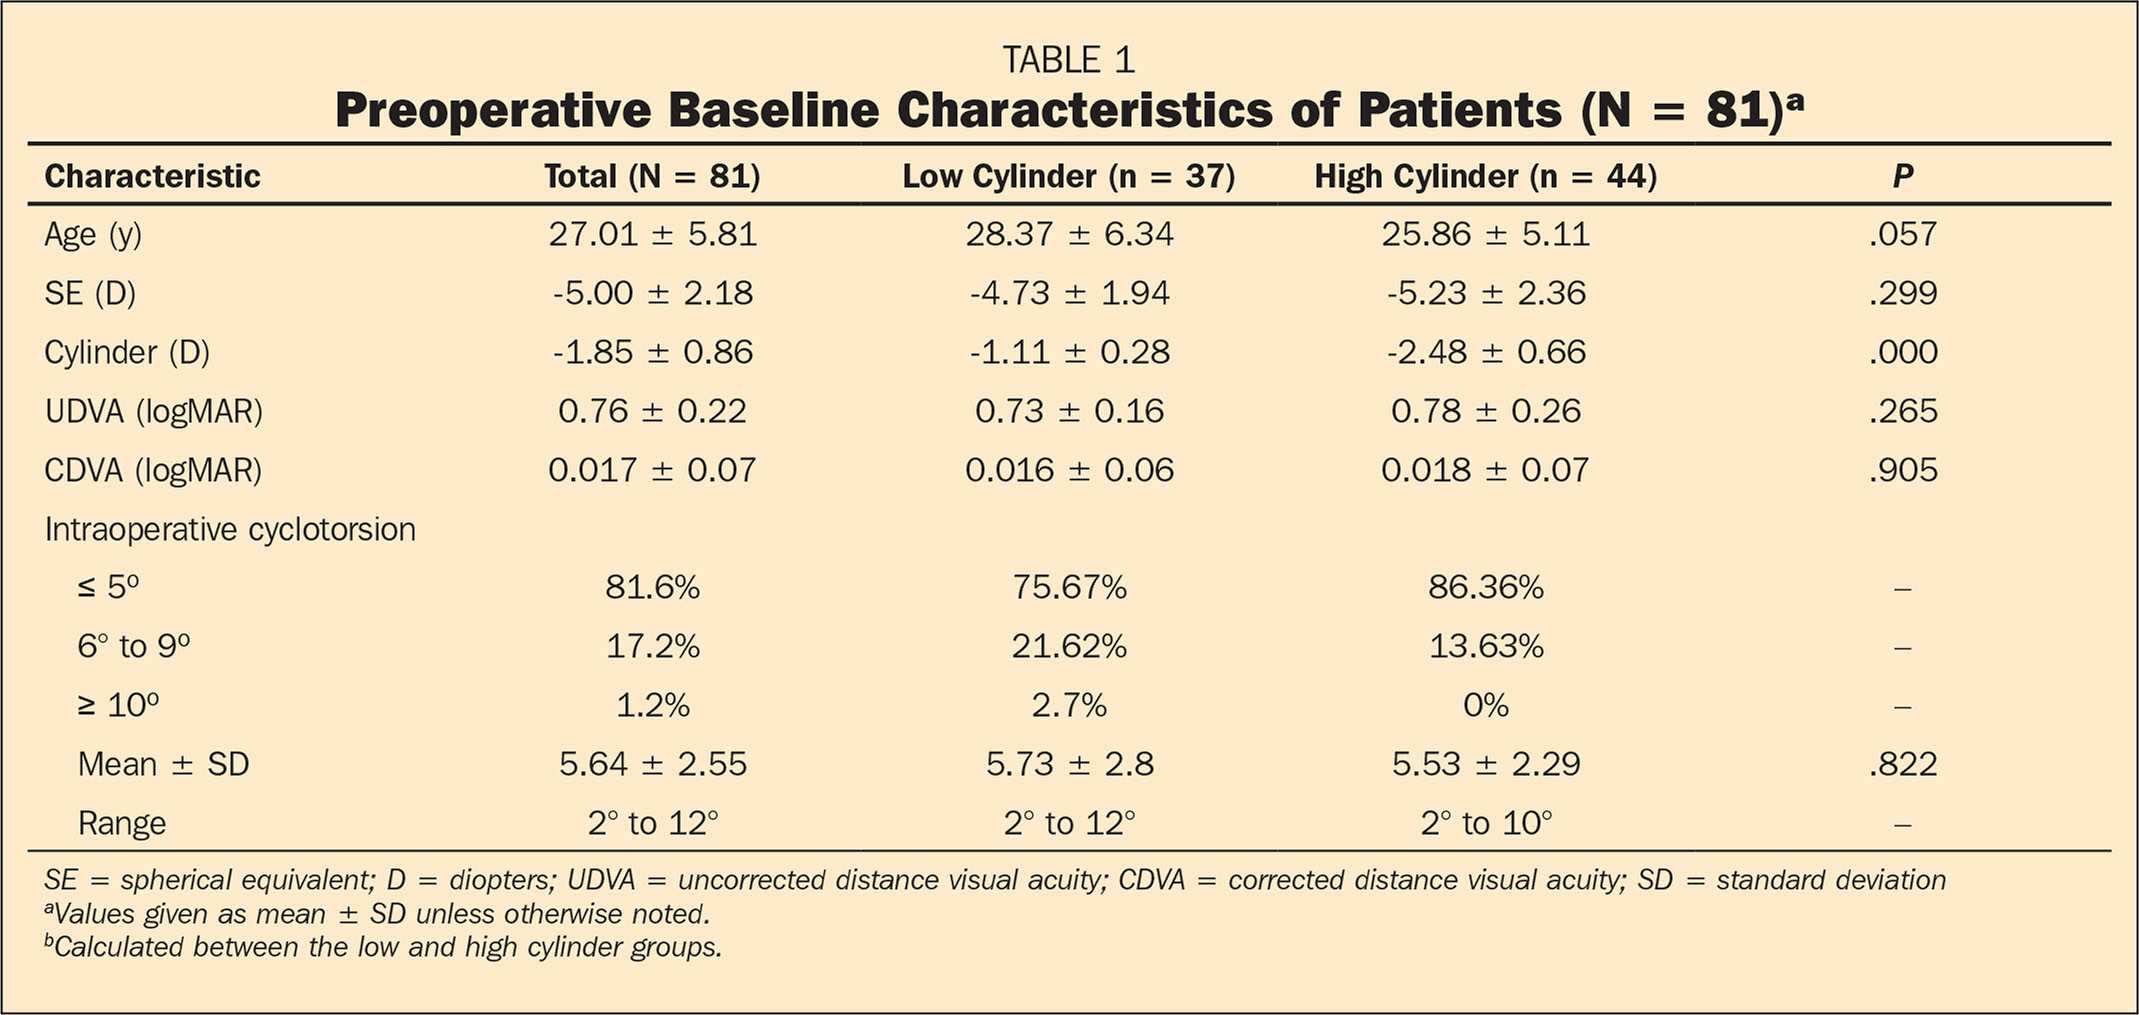 Preoperative Baseline Characteristics of Patients (N = 81)a